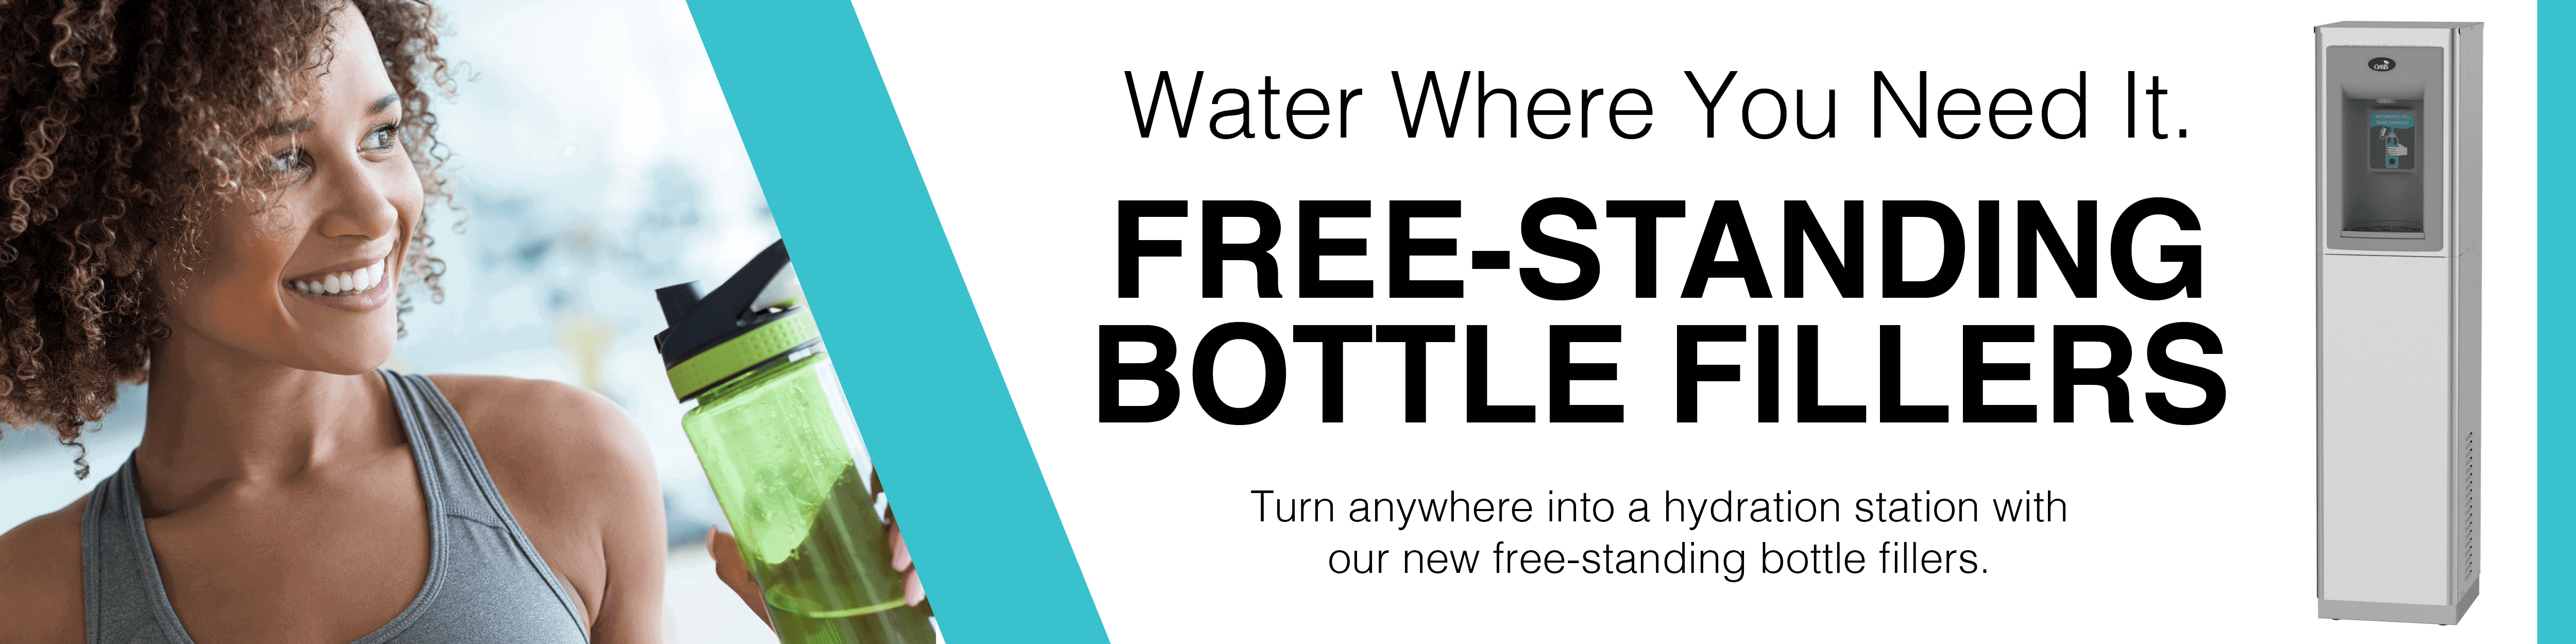 Free-Standing Bottle Fillers